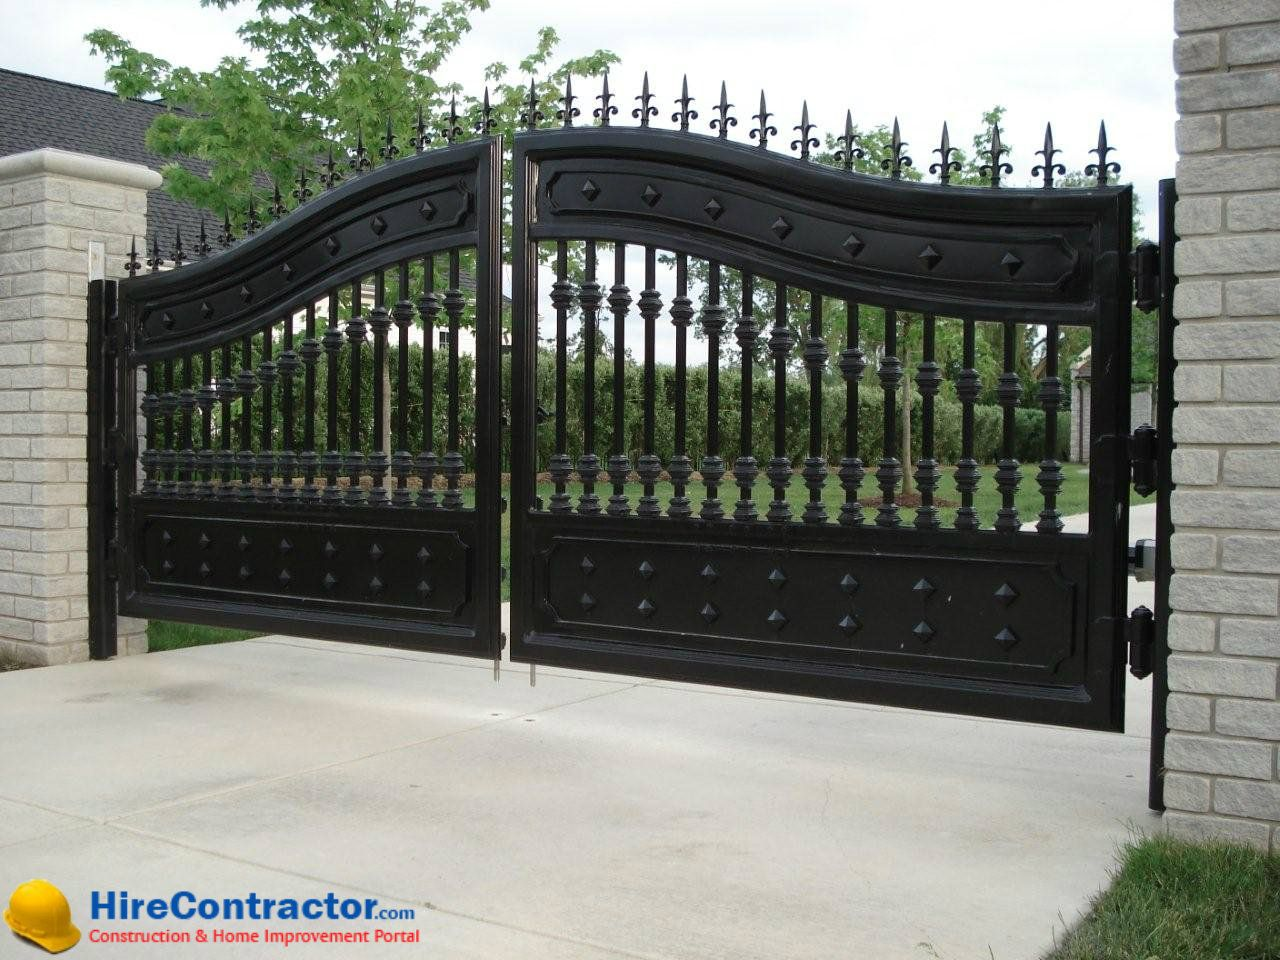 Www Hirecontractor Com Driveways And Your Gates Are The First Things That People Notice When Entrance Gates Design Iron Gate Design Wrought Iron Driveway Gates